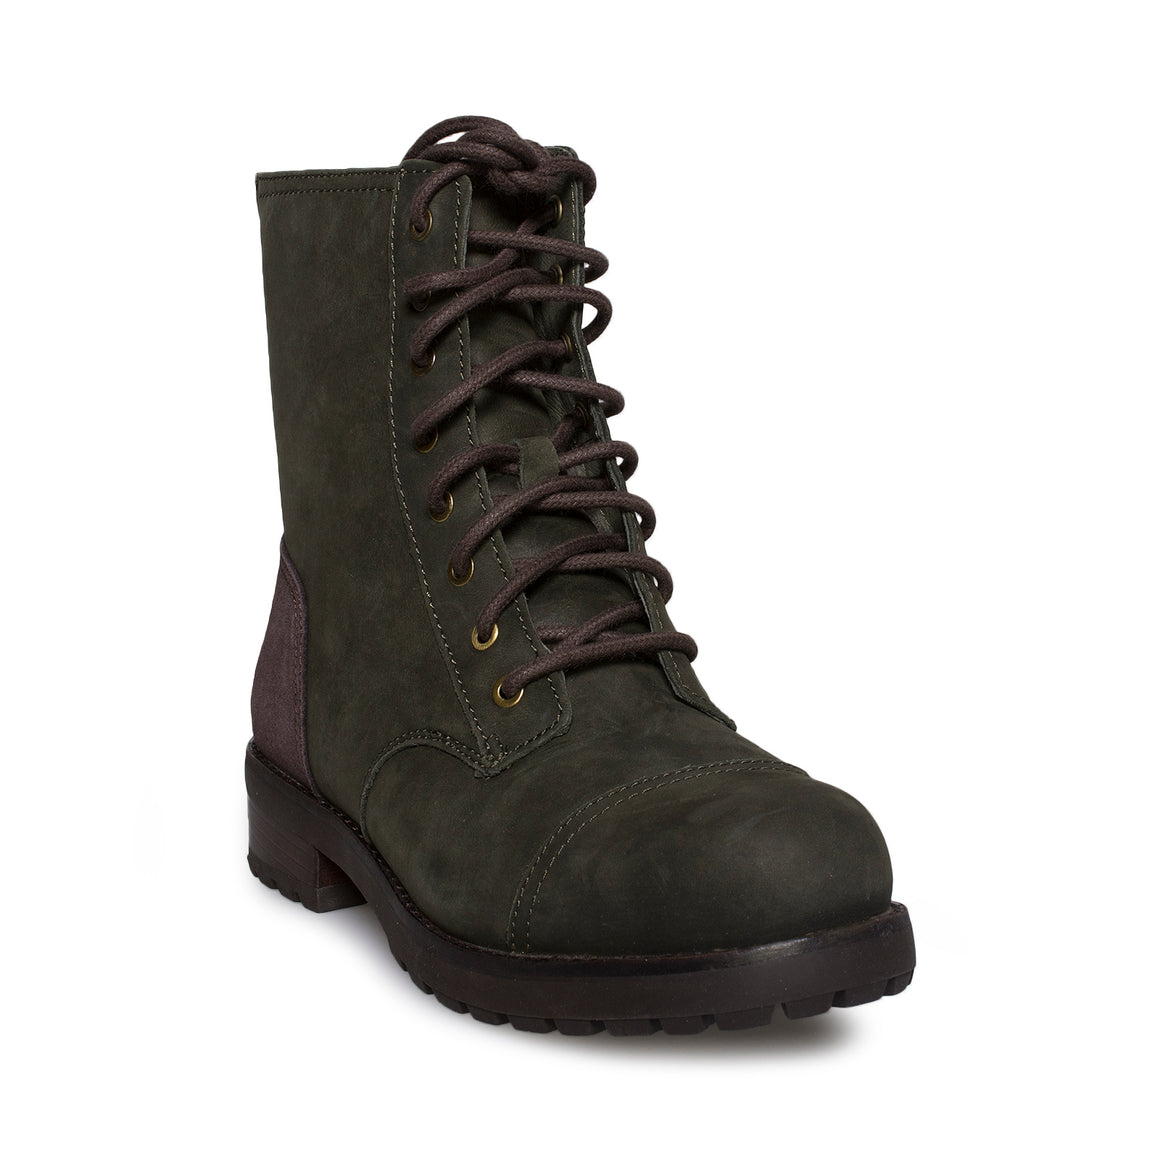 a0f37cf9d02 Women's Boots Tagged